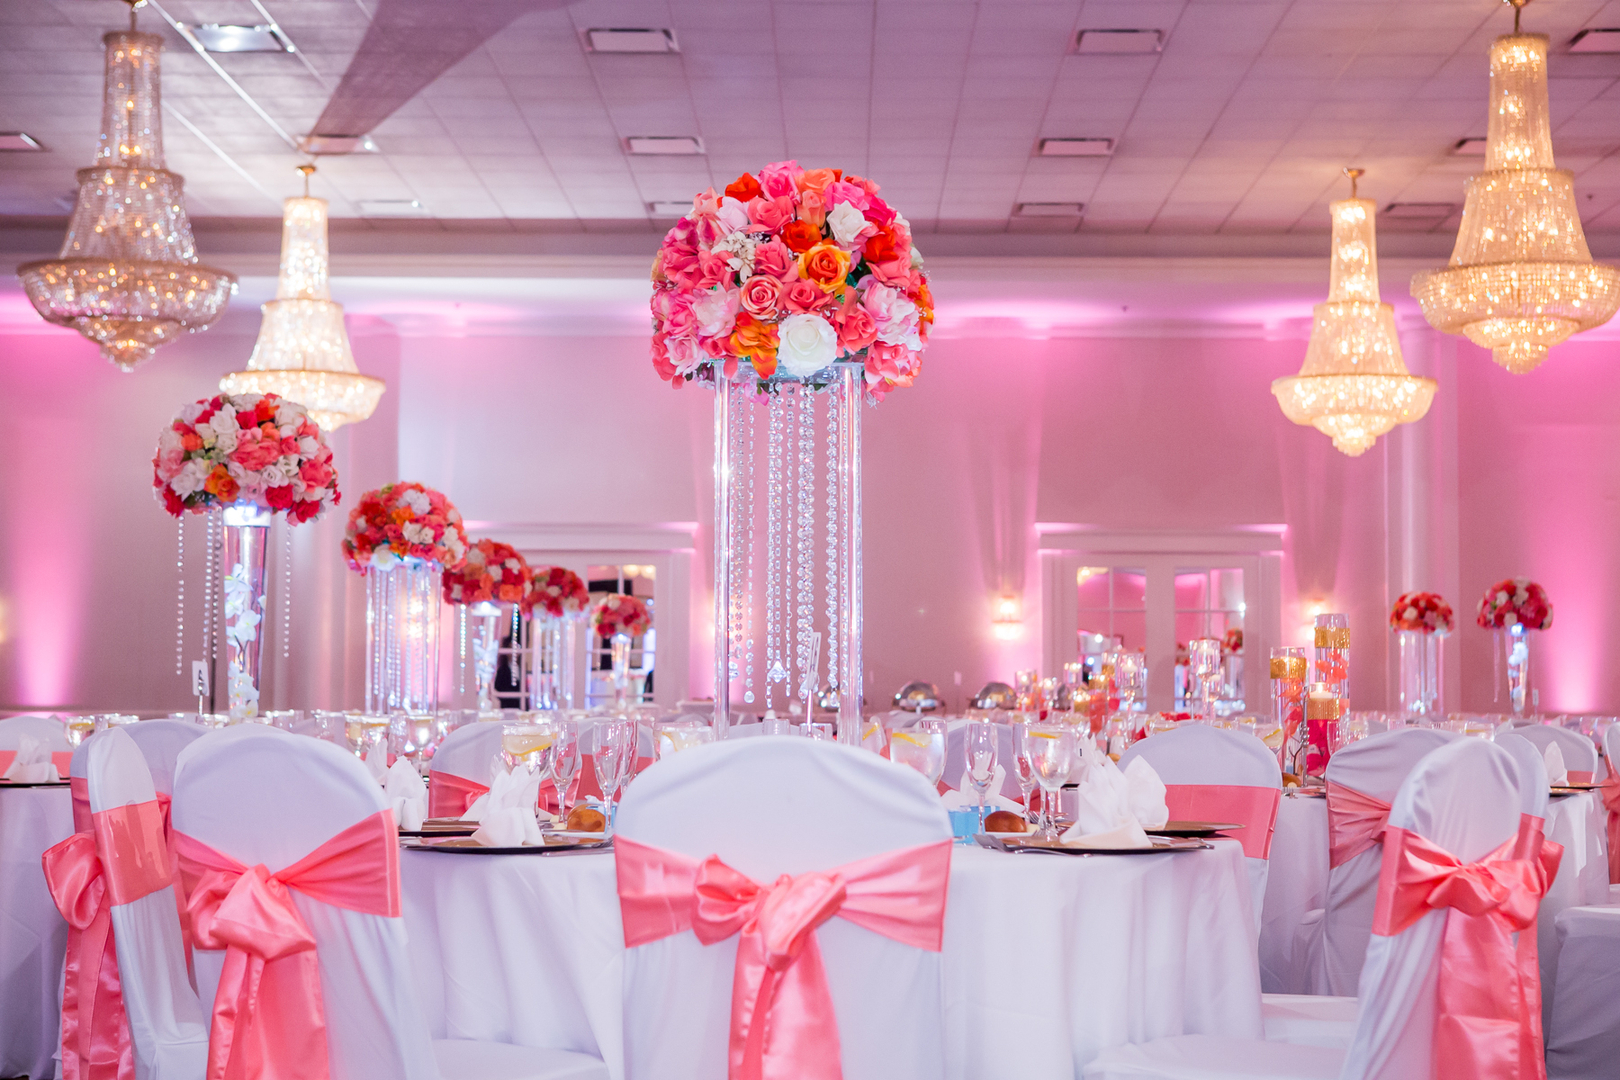 Wedding decor event decor affairs remembered planning design this is strictly a dcor design enhancement service planning of any kind is not included but may be partnered as an additional level of service junglespirit Image collections